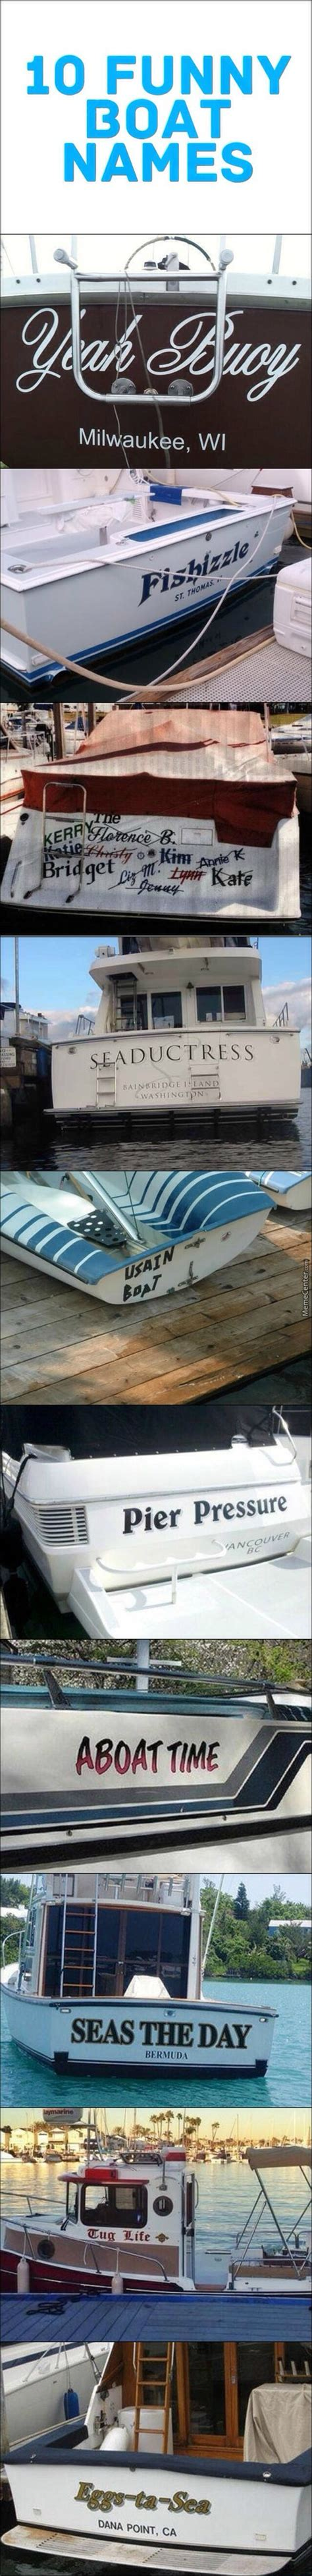 witty fishing boat names it s quot aboat time quot i posted this funny boat humor and